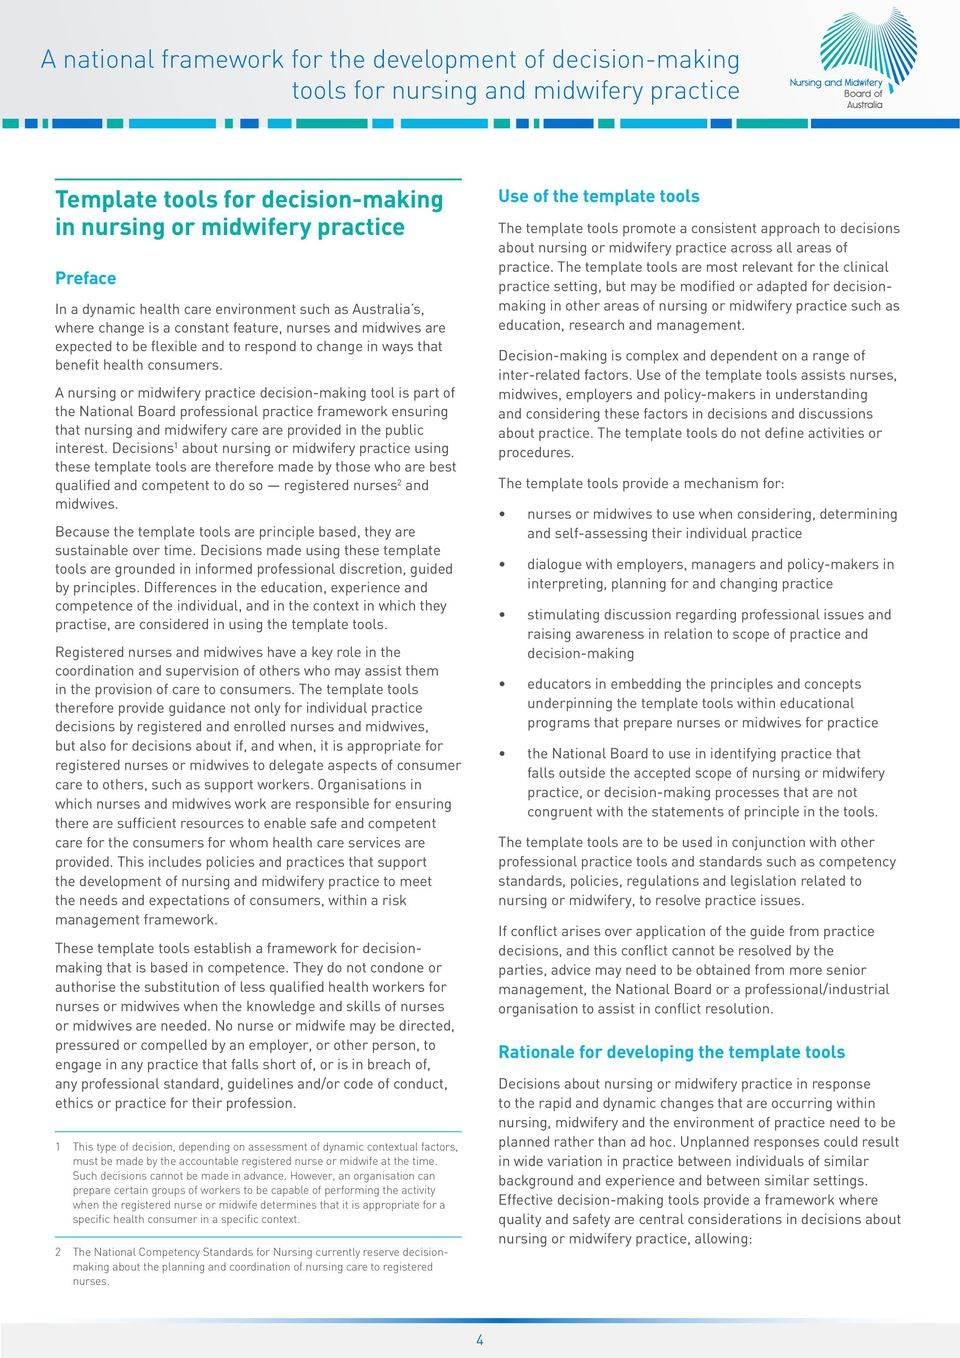 A nursing or midwifery practice decision-making tool is part of the National Board professional practice framework ensuring that nursing and midwifery care are provided in the public interest.